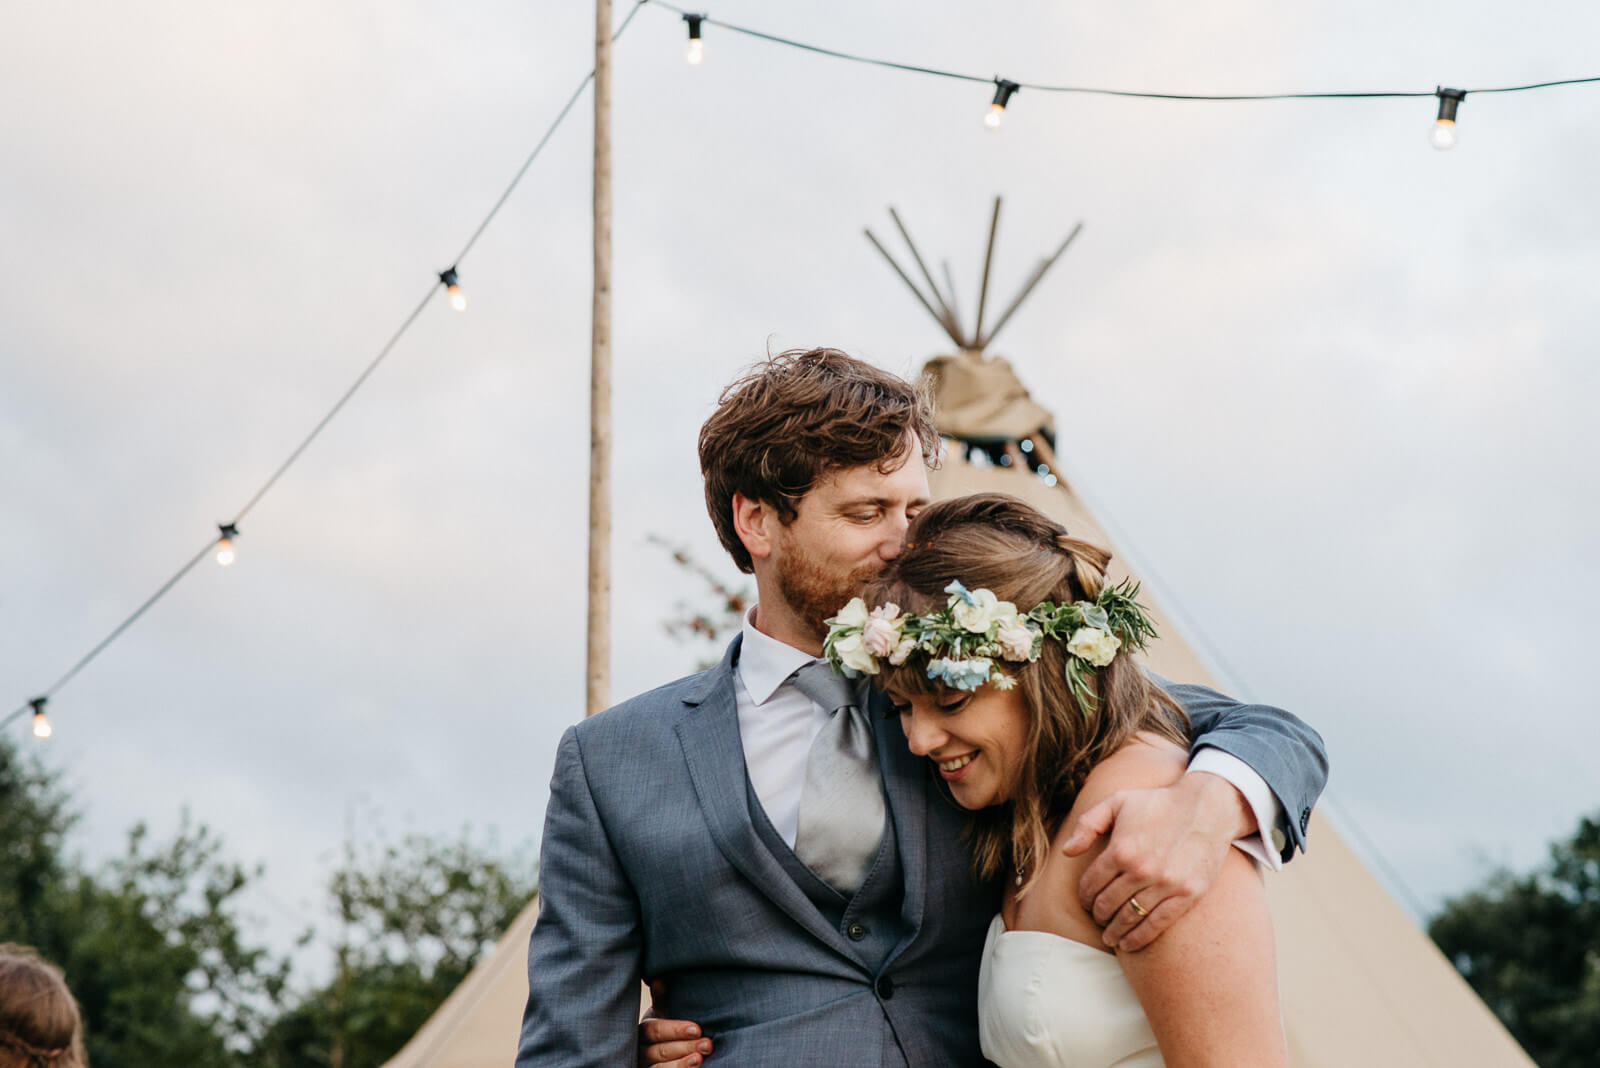 Groom lovingly kisses bride wearing floral crown under festoon lights at festival style Shropshire wedding